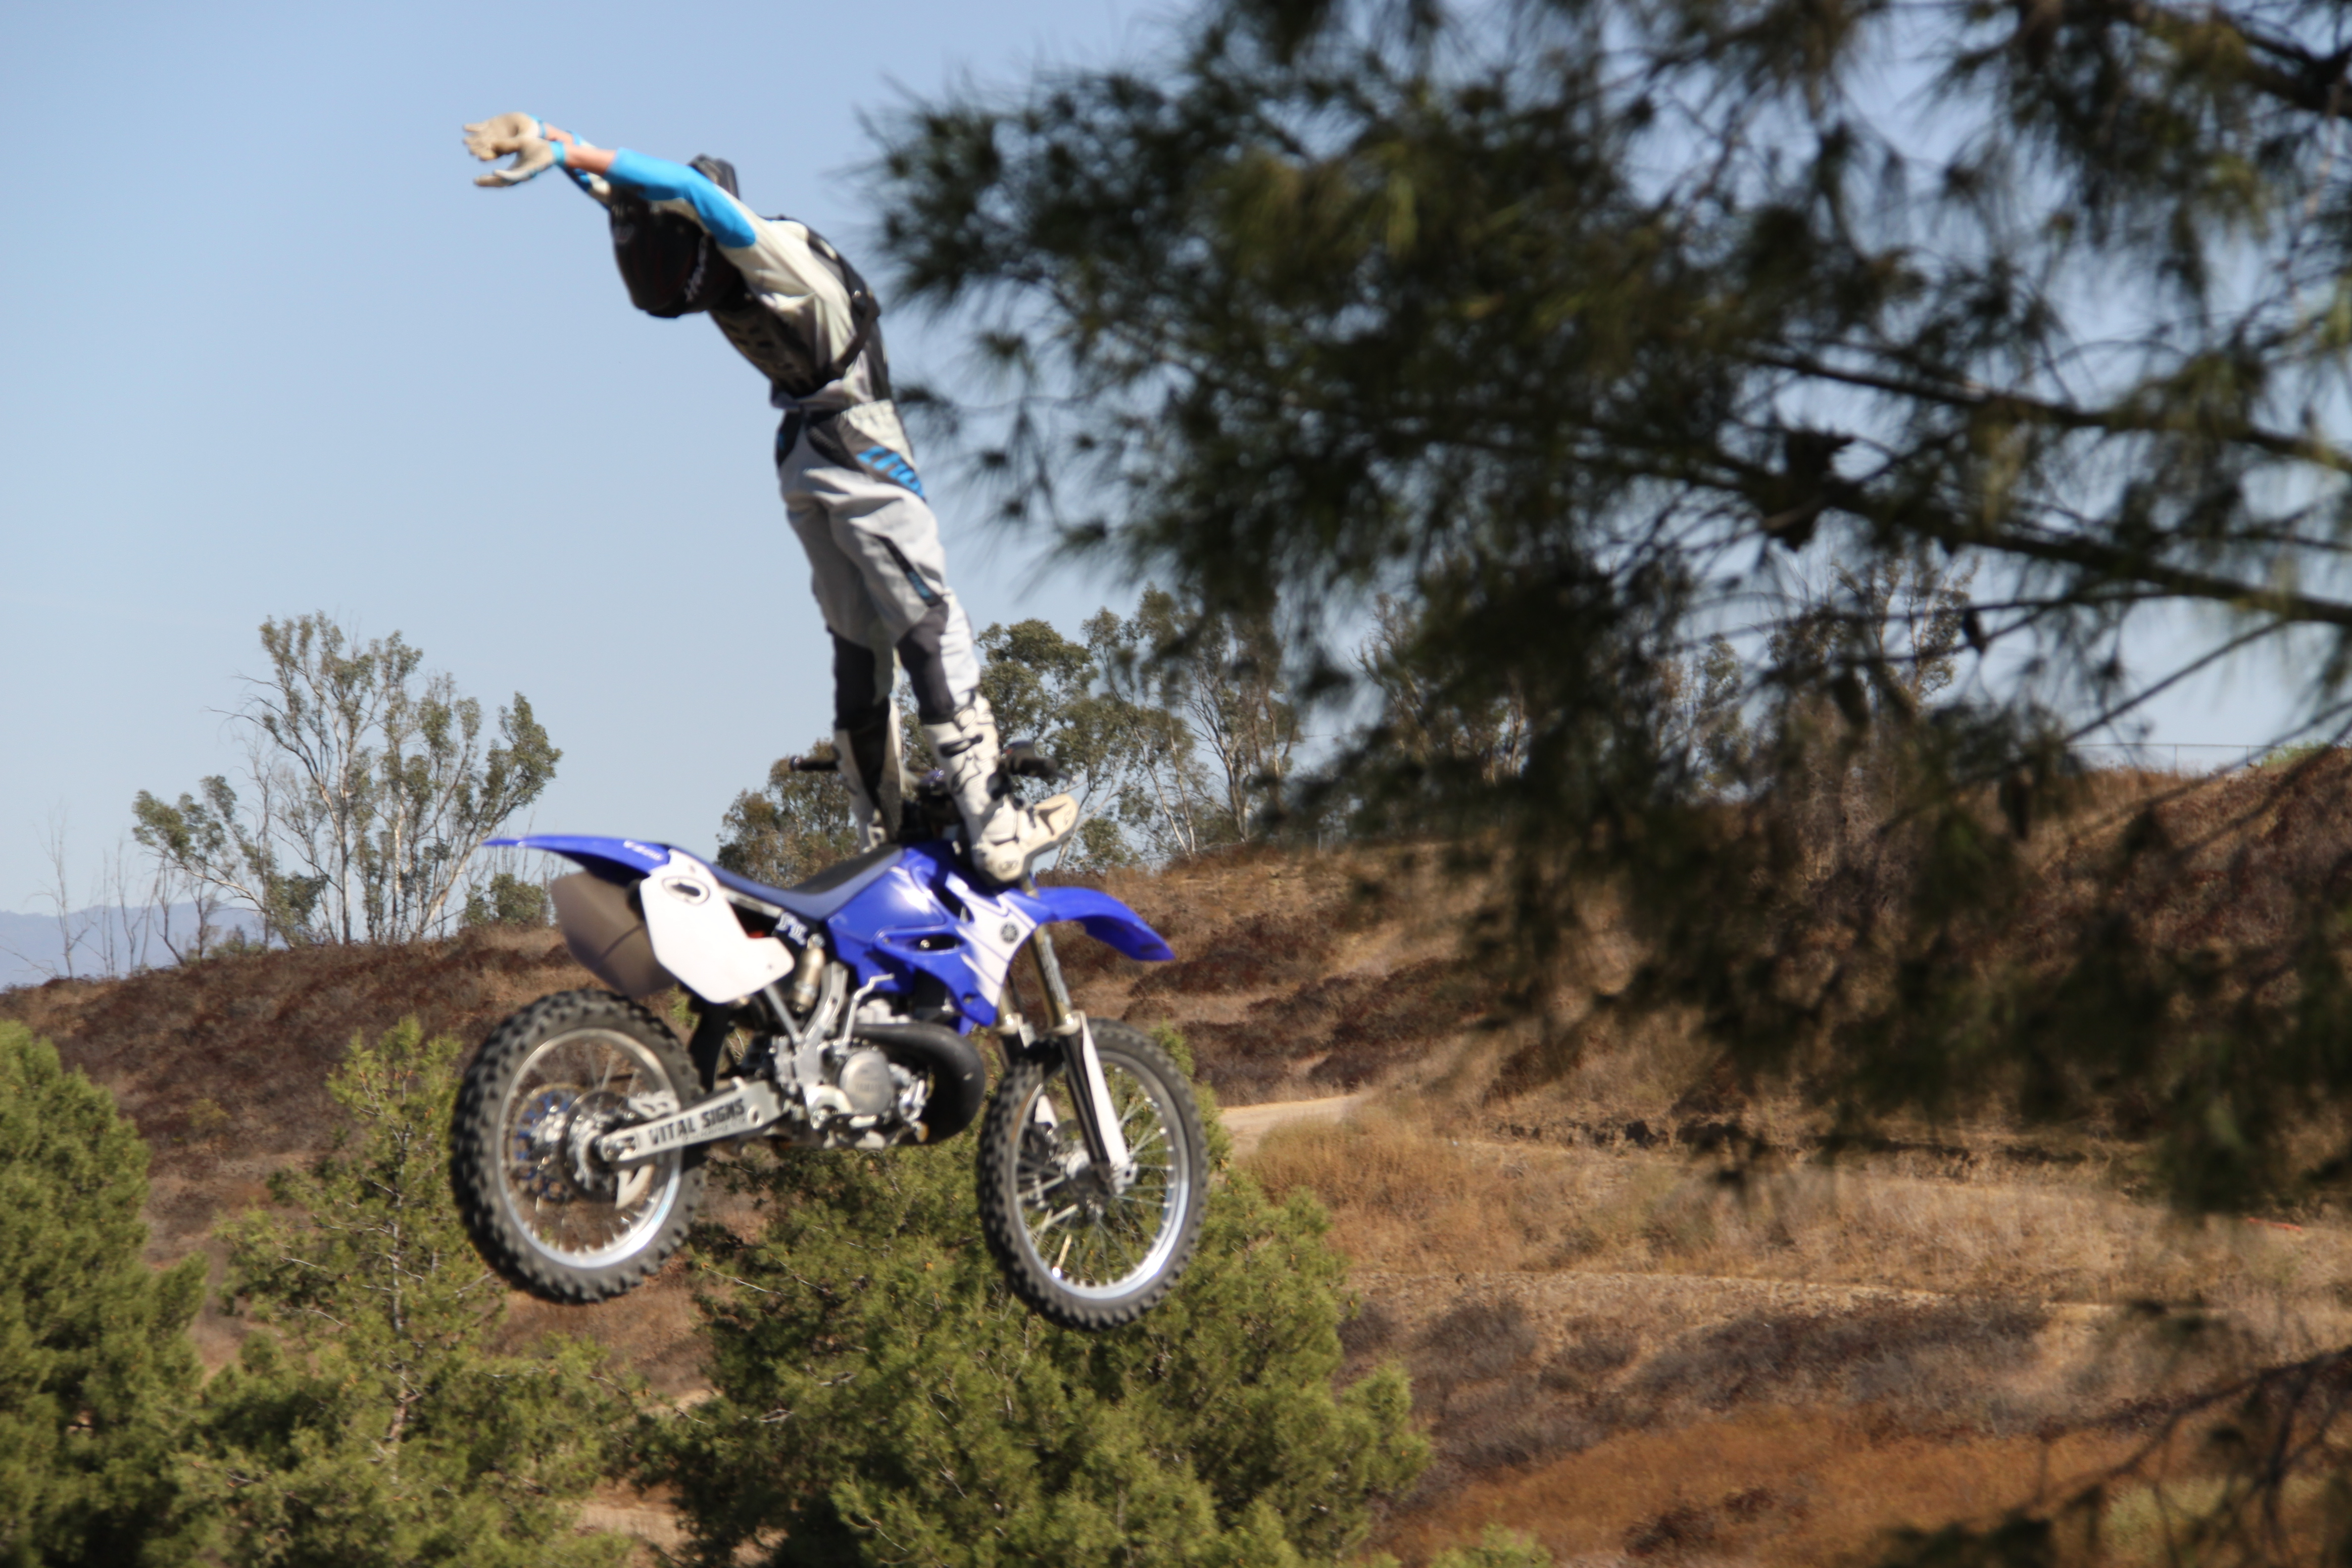 motocross vehicles motorbikes freestyle HD Wallpaper